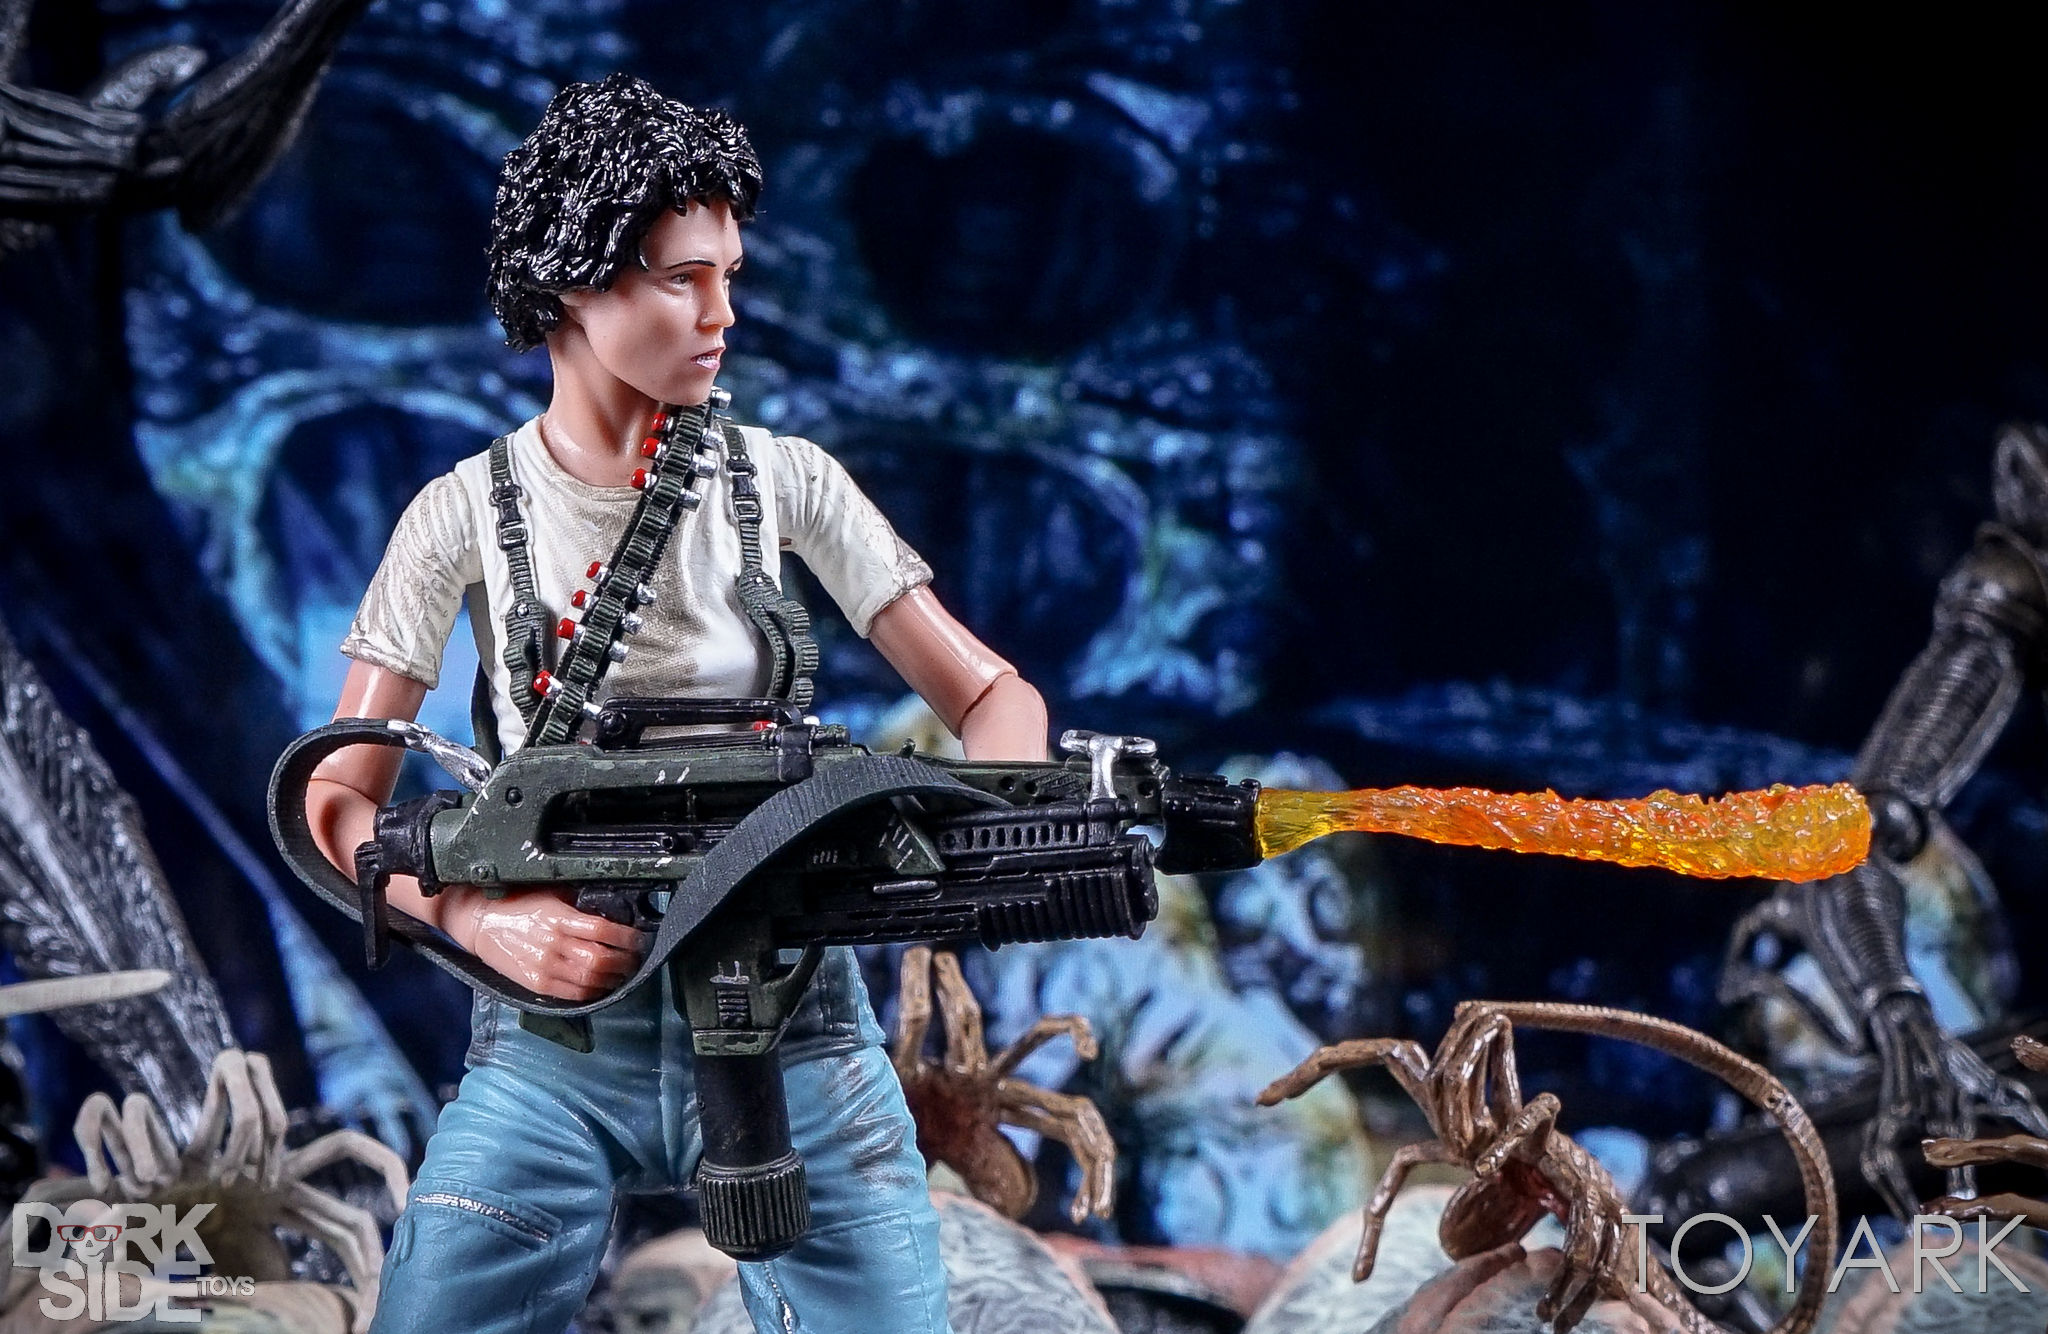 http://news.toyark.com/wp-content/uploads/sites/4/2016/12/Aliens-NECA-Ripley-and-Newt-Set-023.jpg